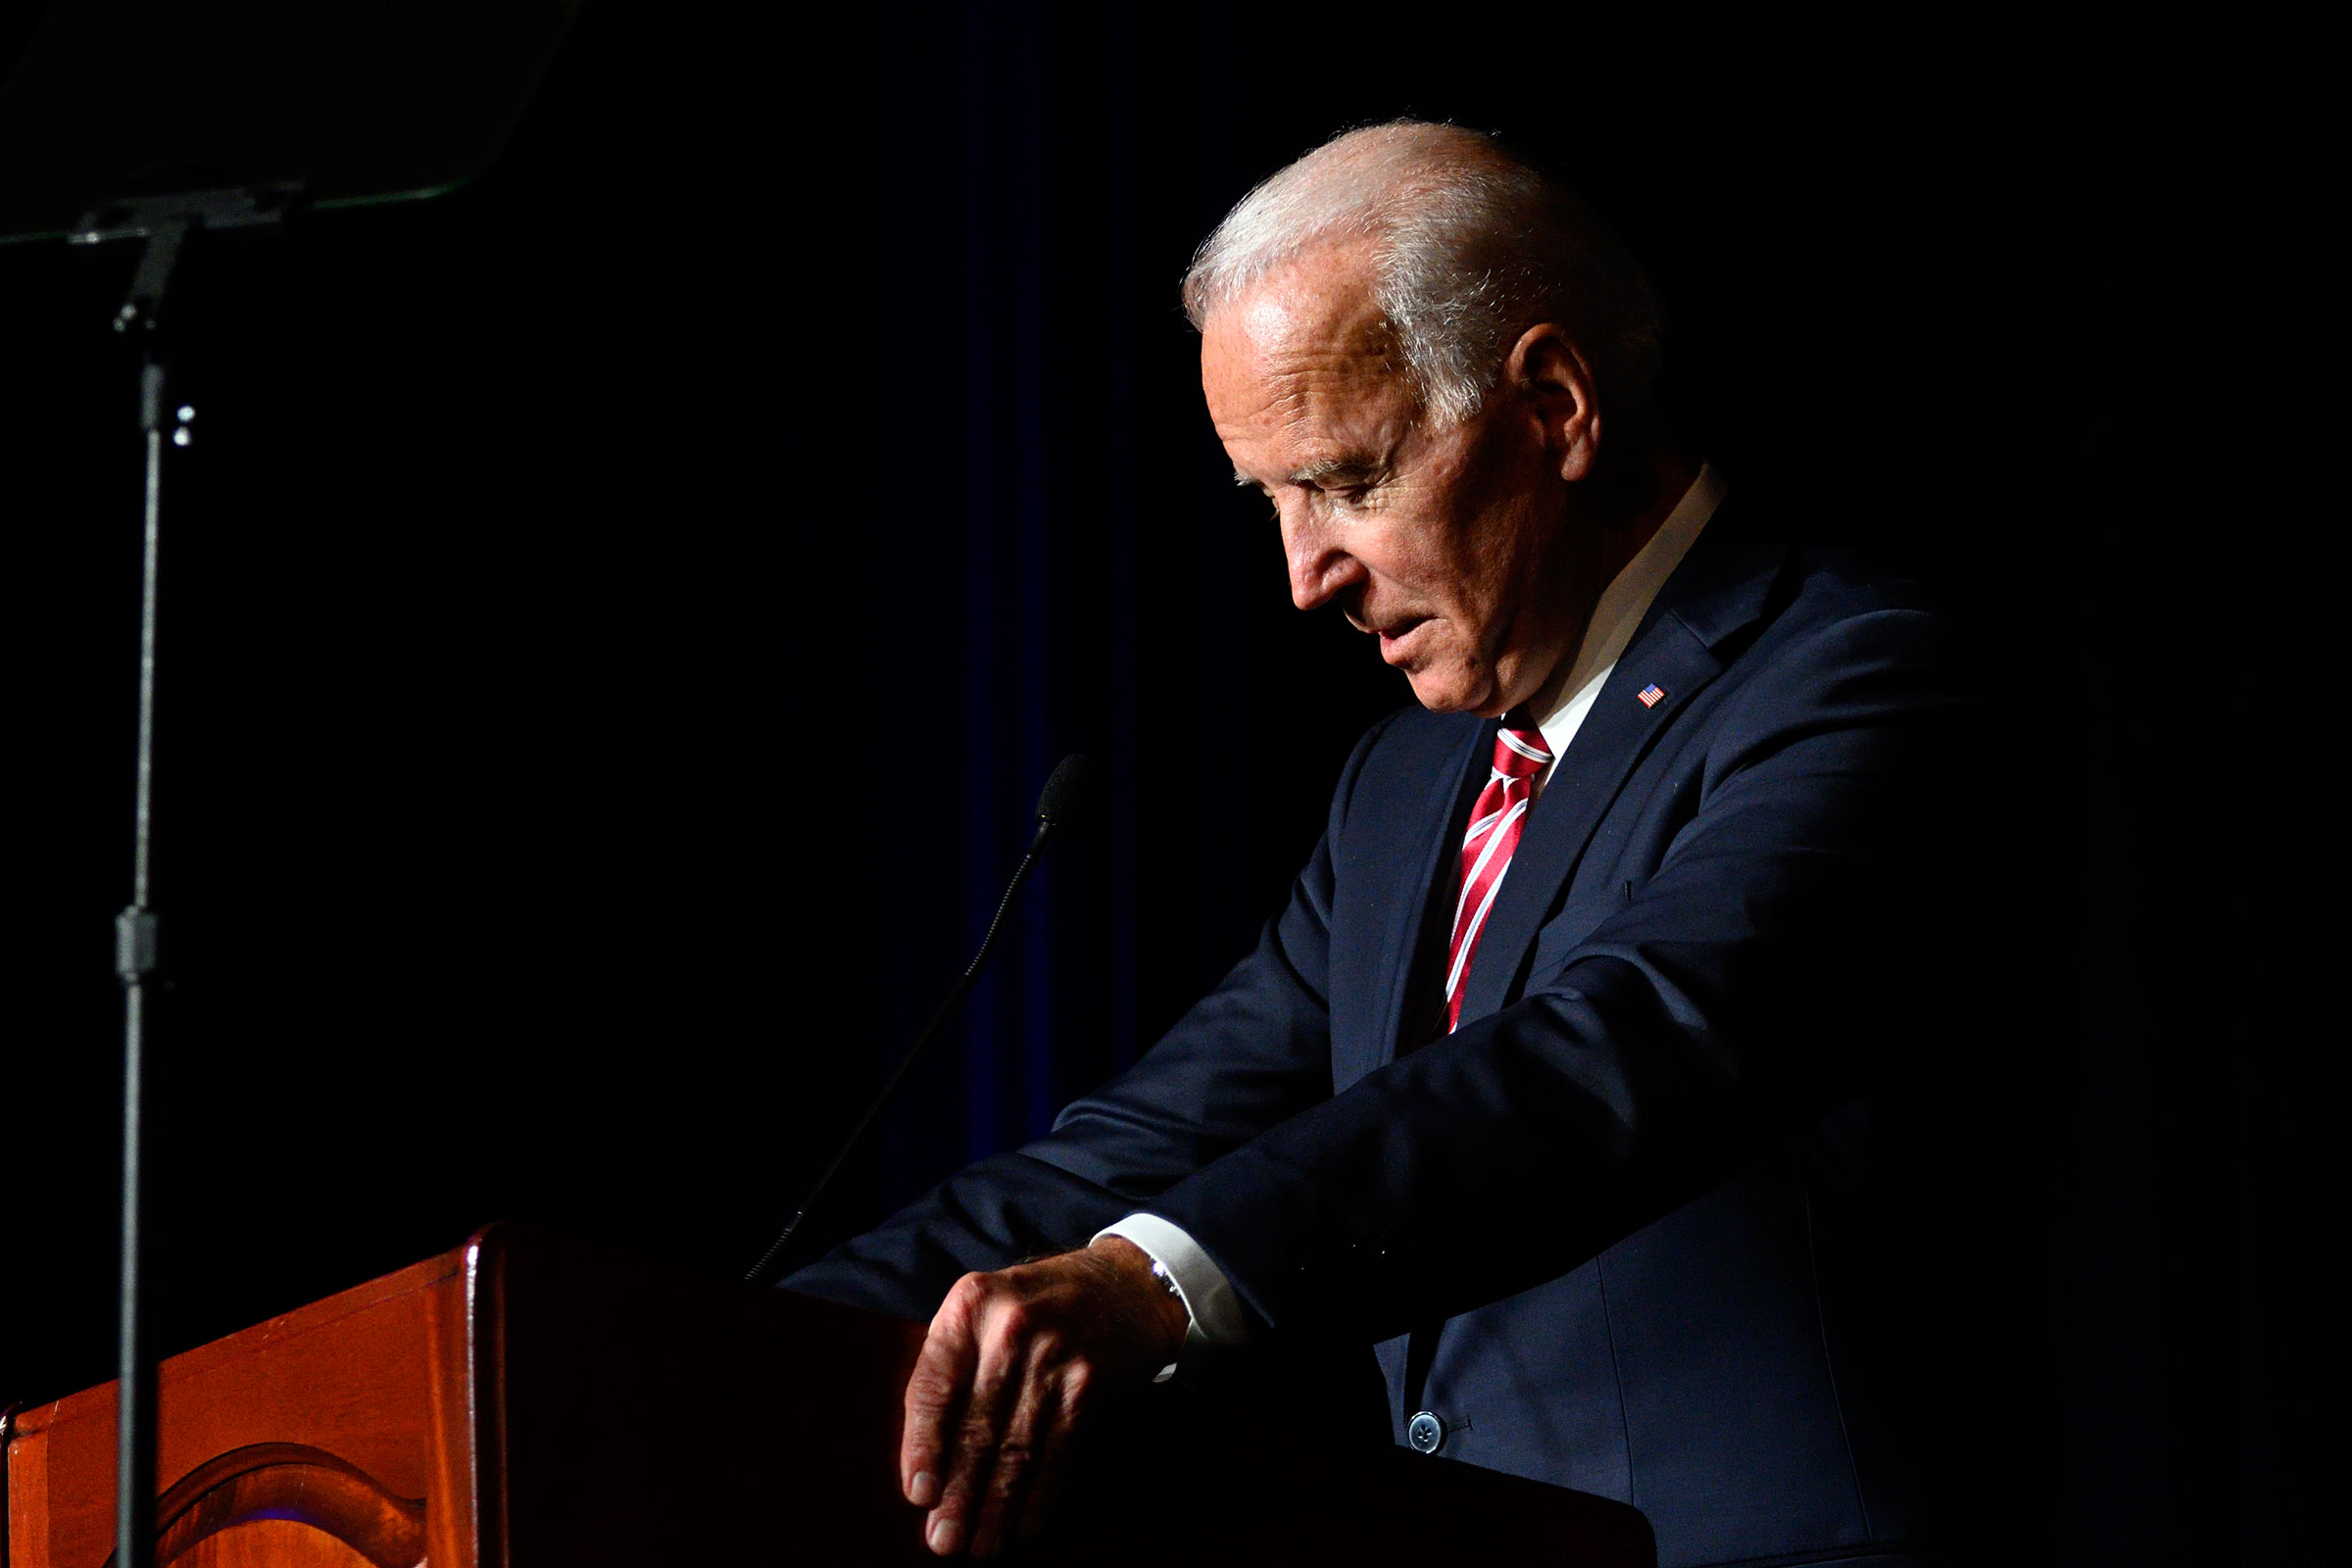 Joe Biden delivers the keynote speech at the First State Democratic Dinner in Dover, DE on March 16, 2019.